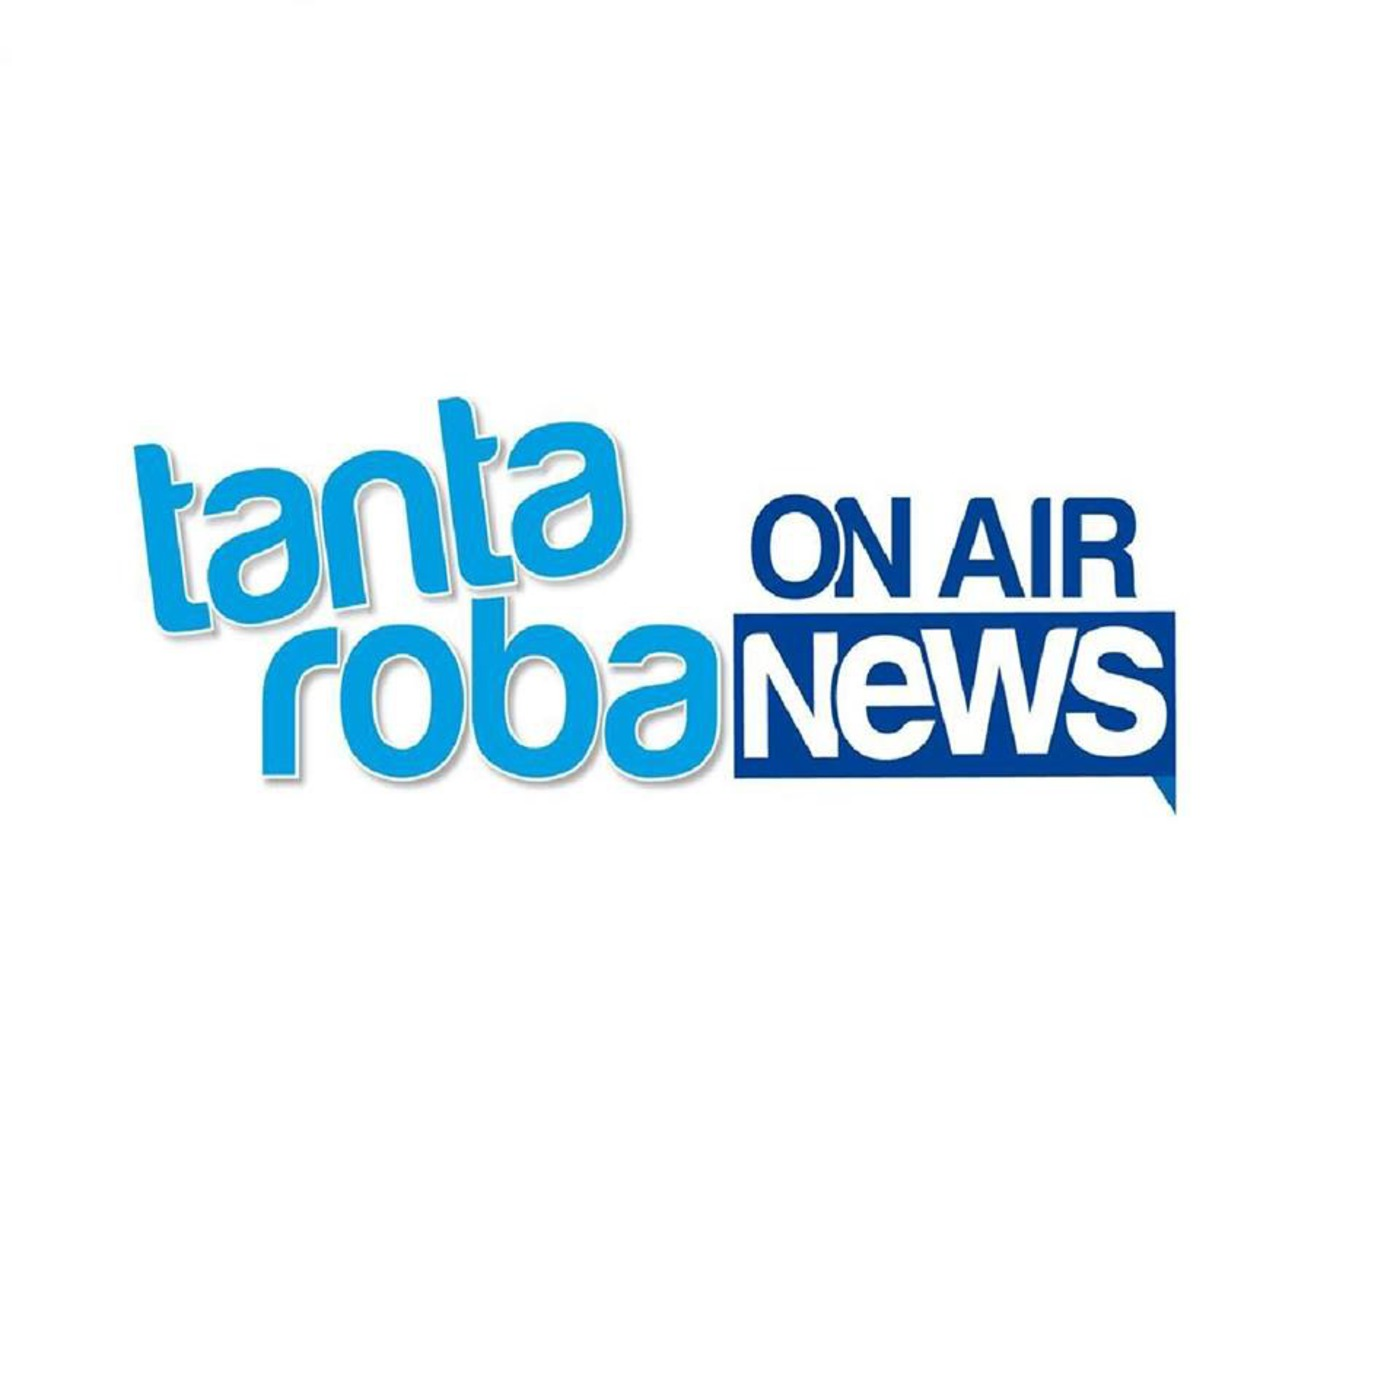 Tanta Roba News On Air